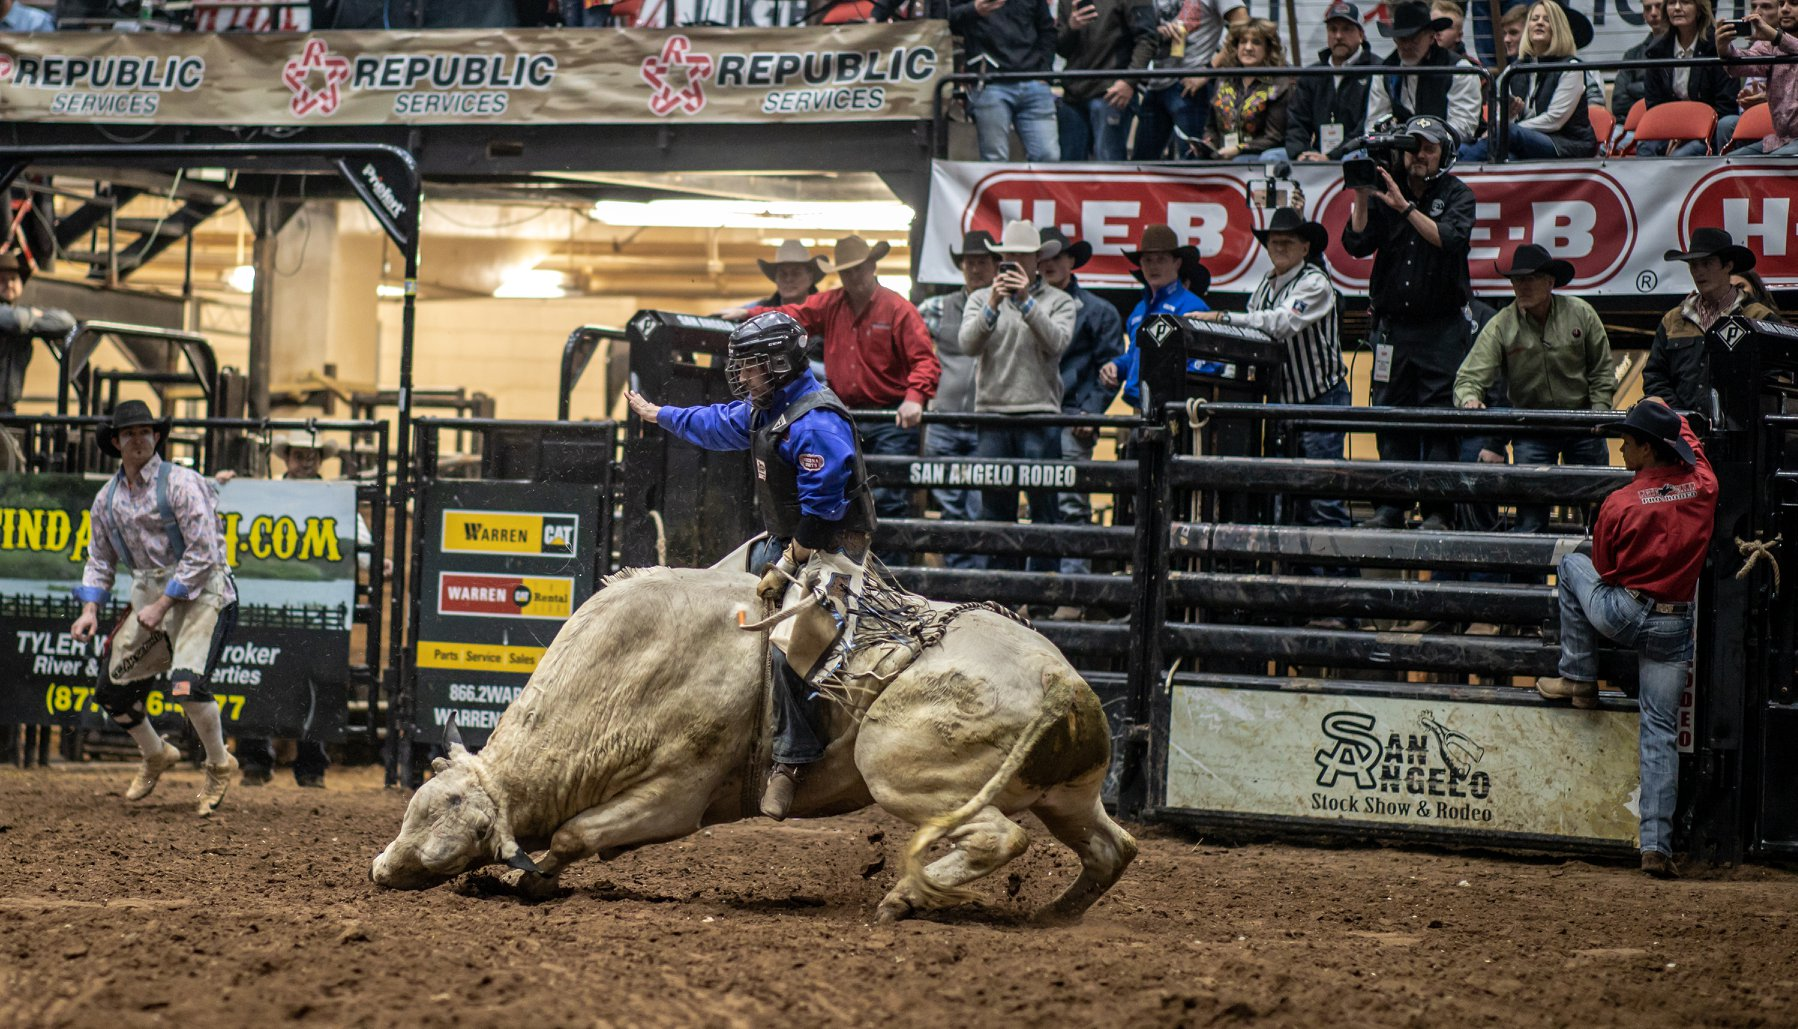 That moment when Tim Bingham's bull went down on its belly during the 2020 San Angelo Rodeo Final Round. (LIVE! Photo/Shawn Morrow)